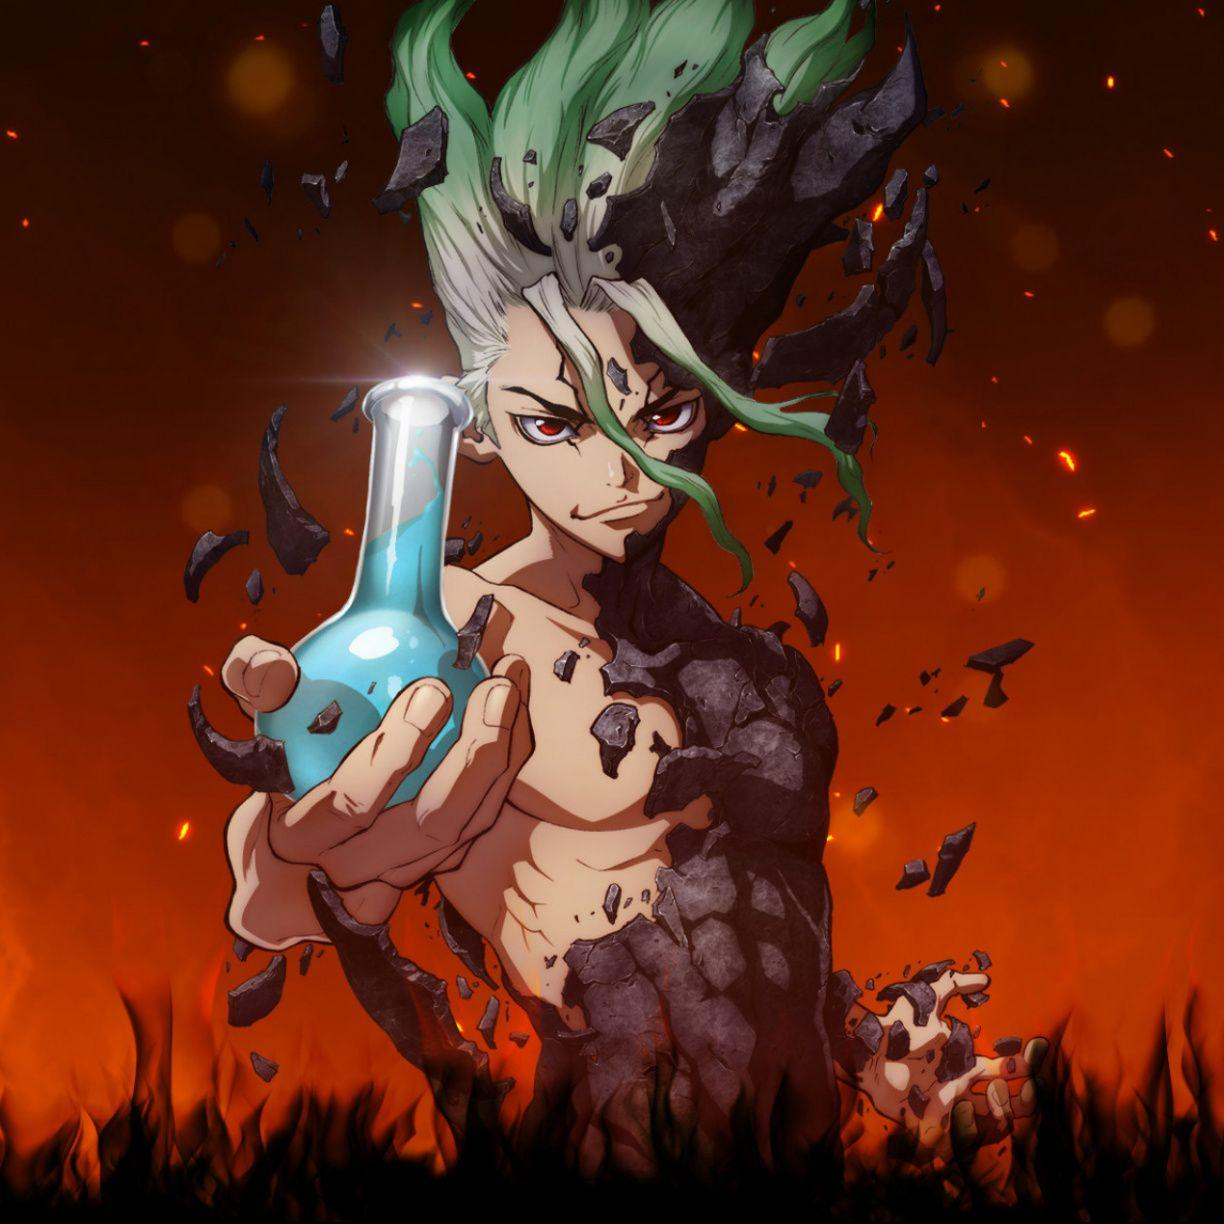 Anime boy, artwork, Senku Ishigami, Dr. Stone, 1224x1224